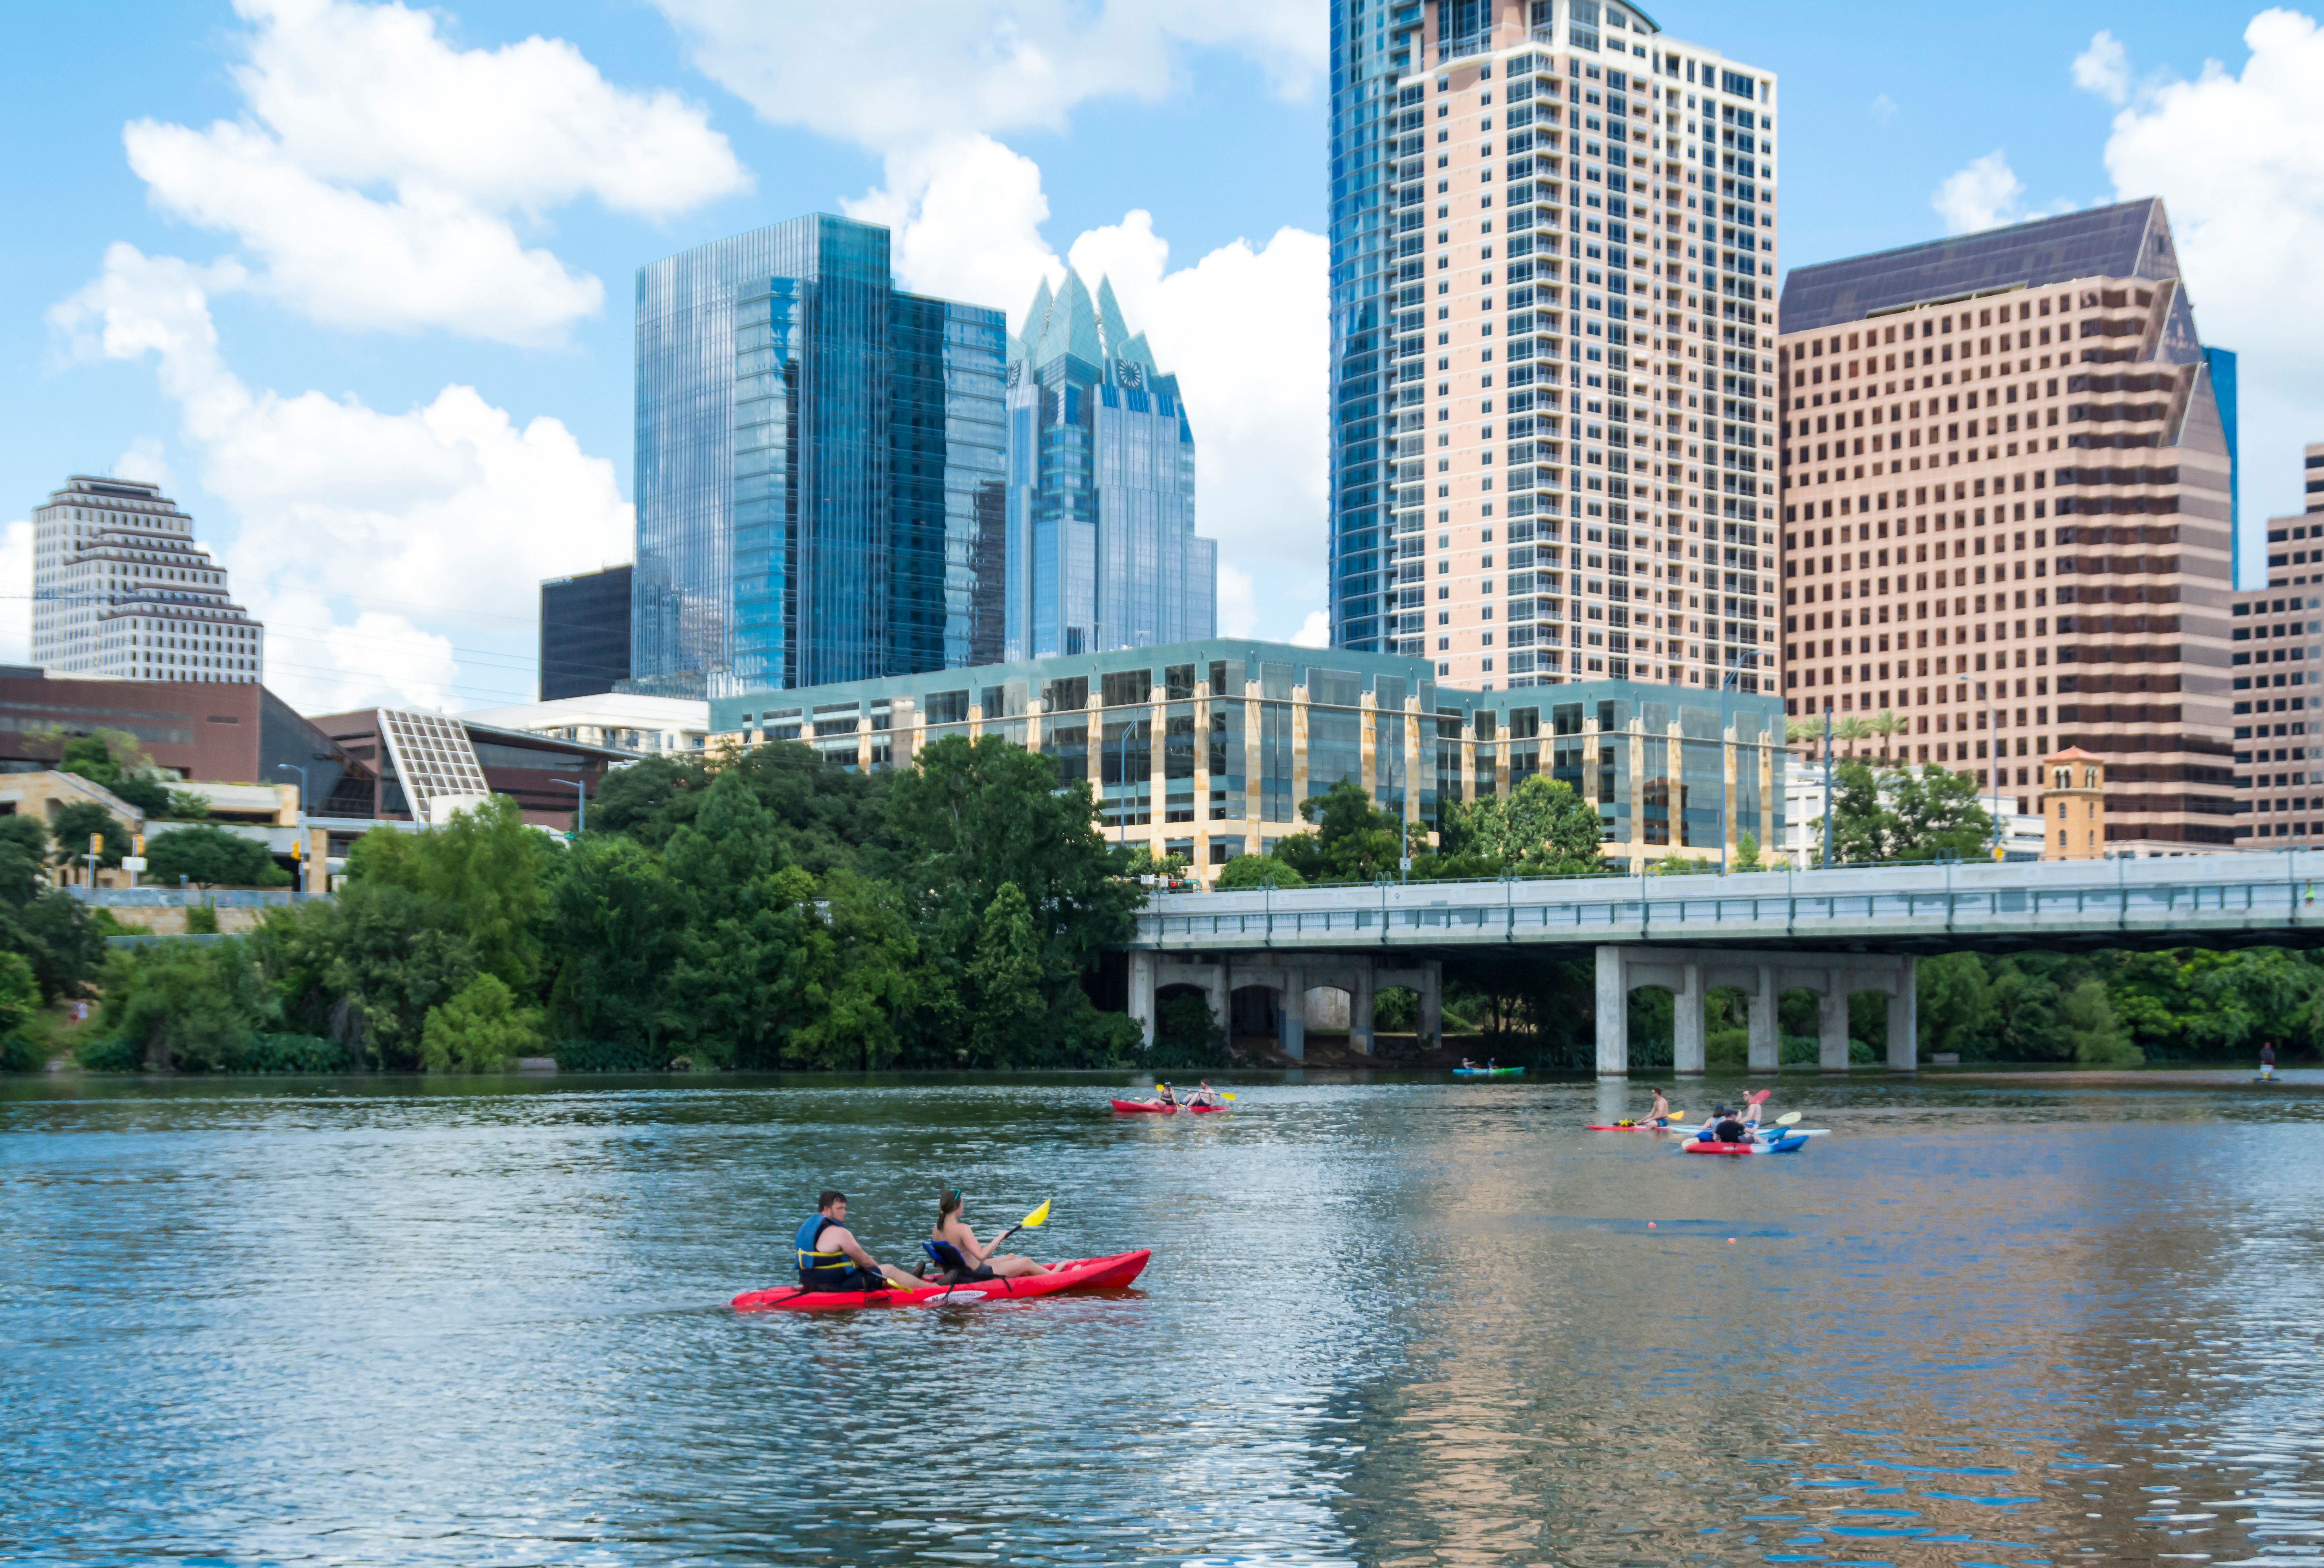 People canoeing on Lady Bird Lake in Austin with the Austin Skyline in the background.